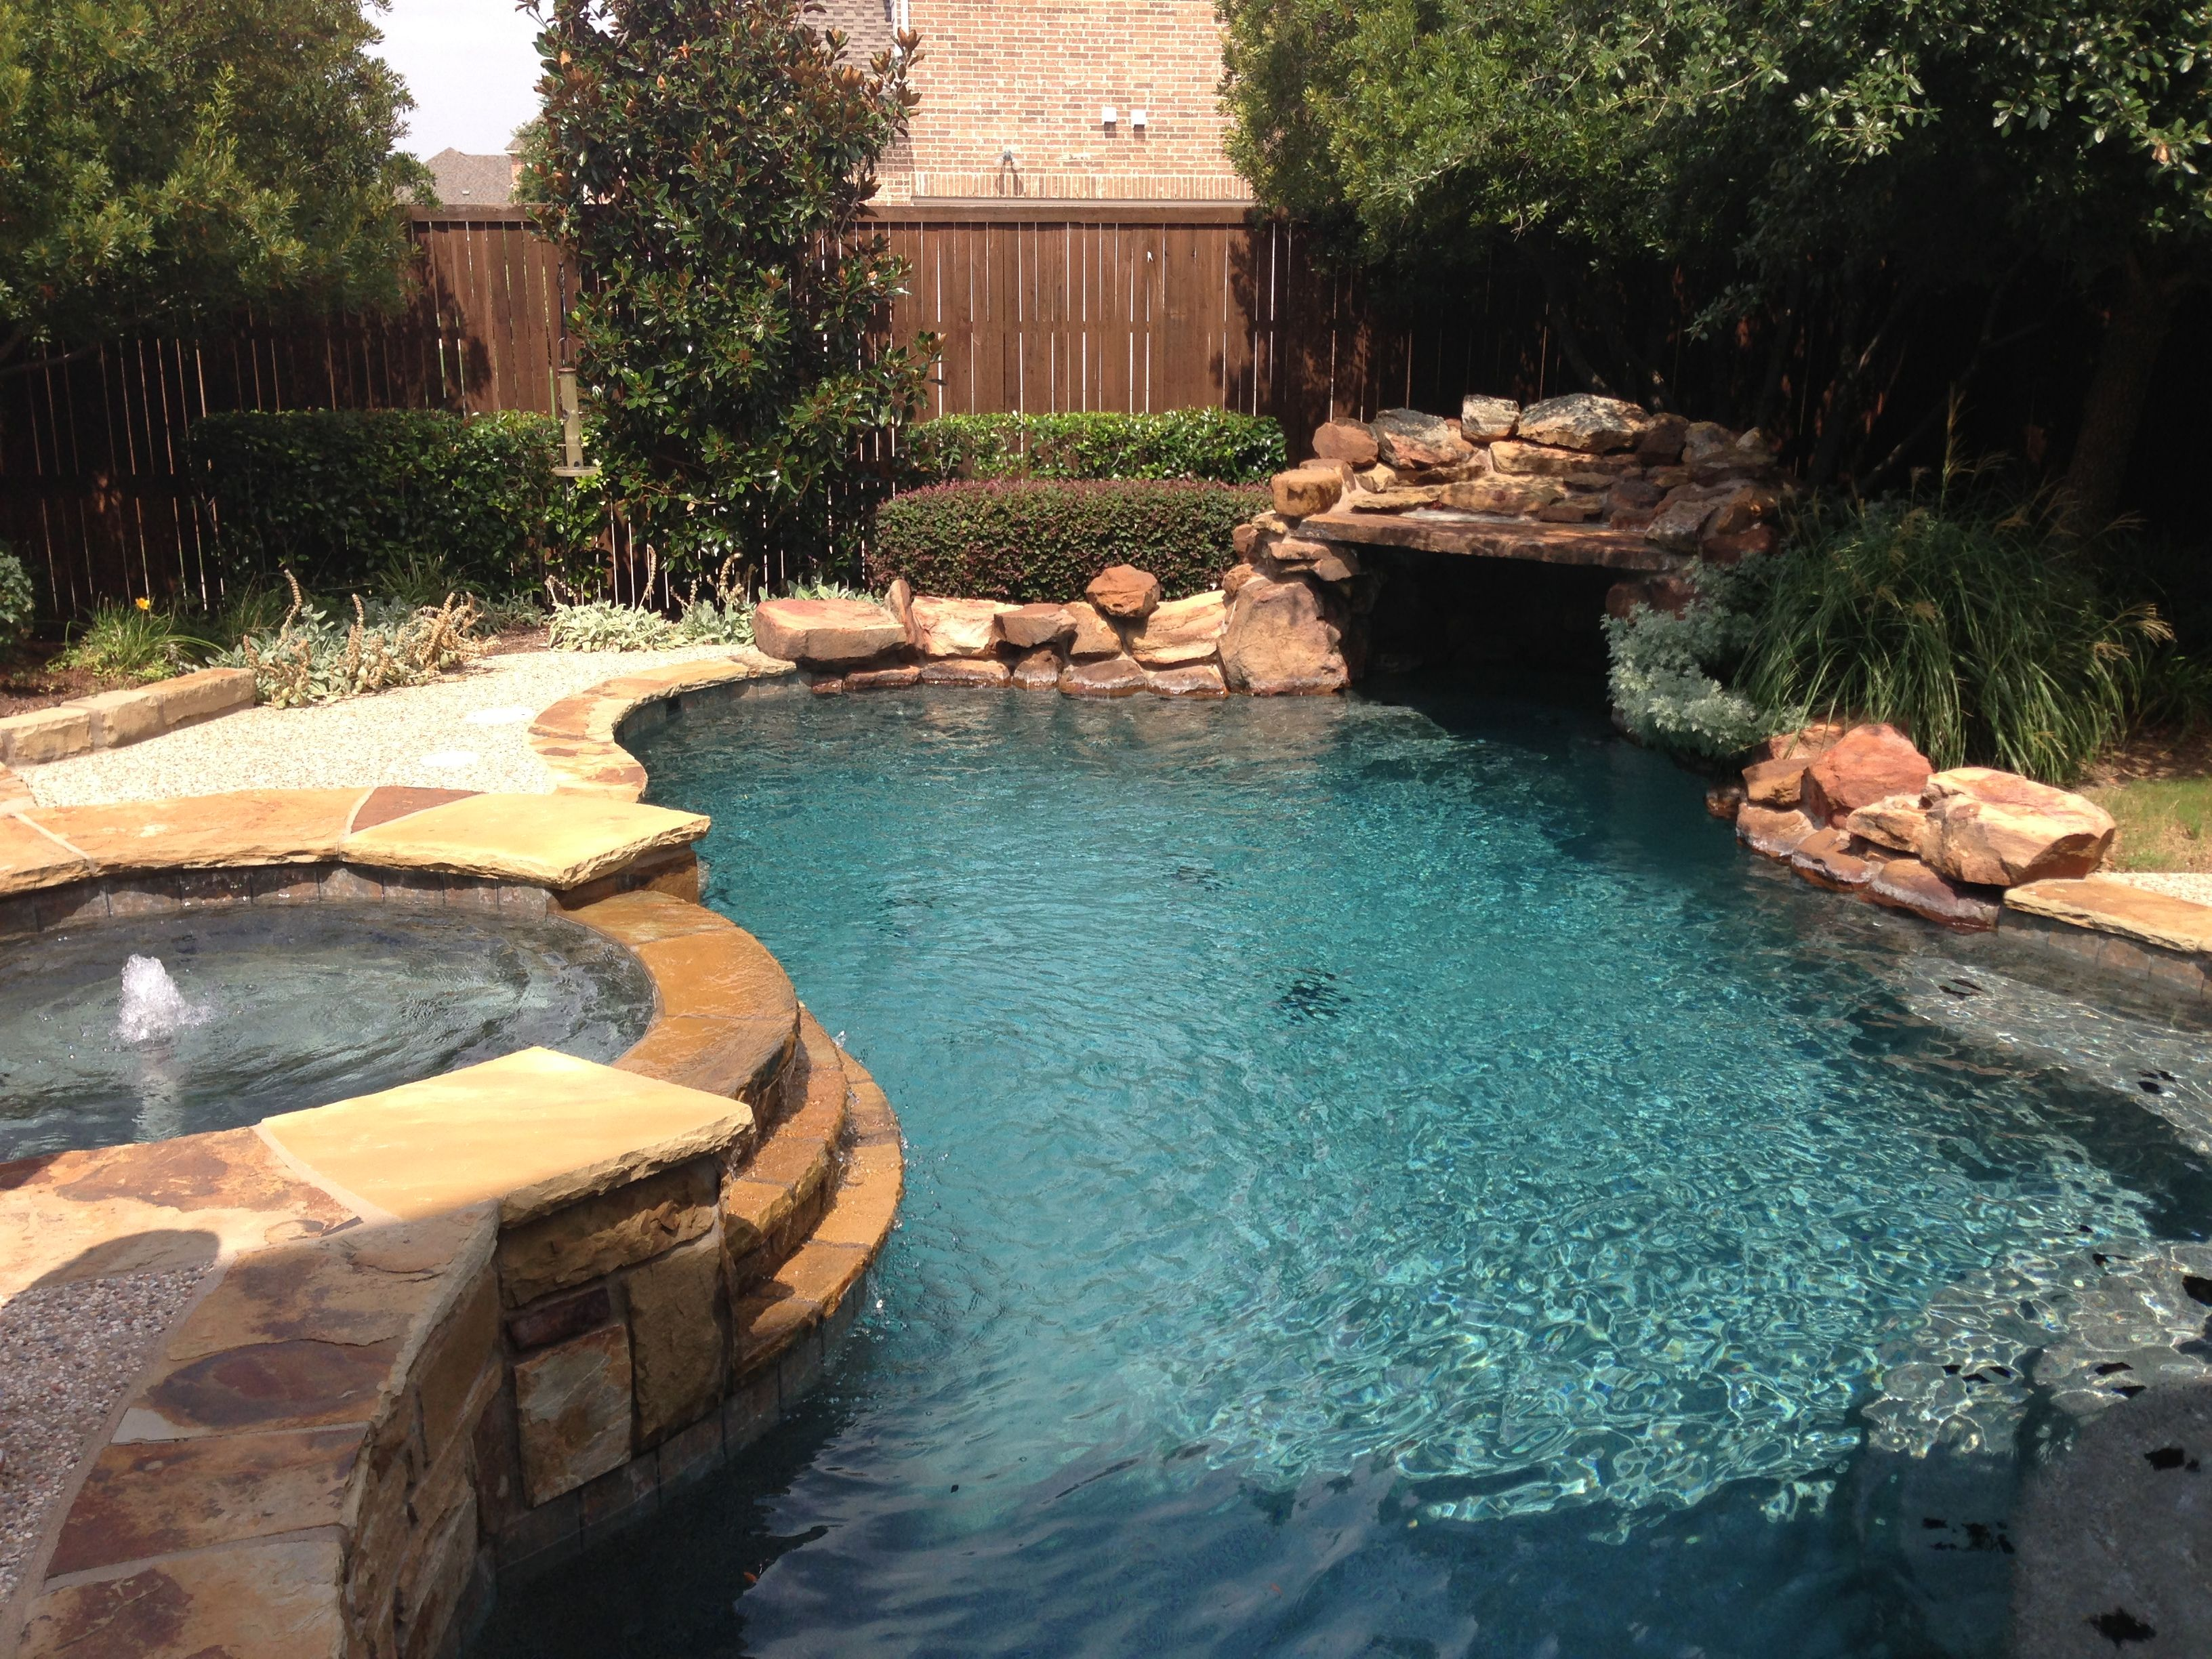 Inground Pool Patio Designs narrow pool with hot tub firepit great for small spaces Httpwww Frisco Tx Homes For Sale Comwp Contentuploads201308 Learn More At Com Small Inground Pool